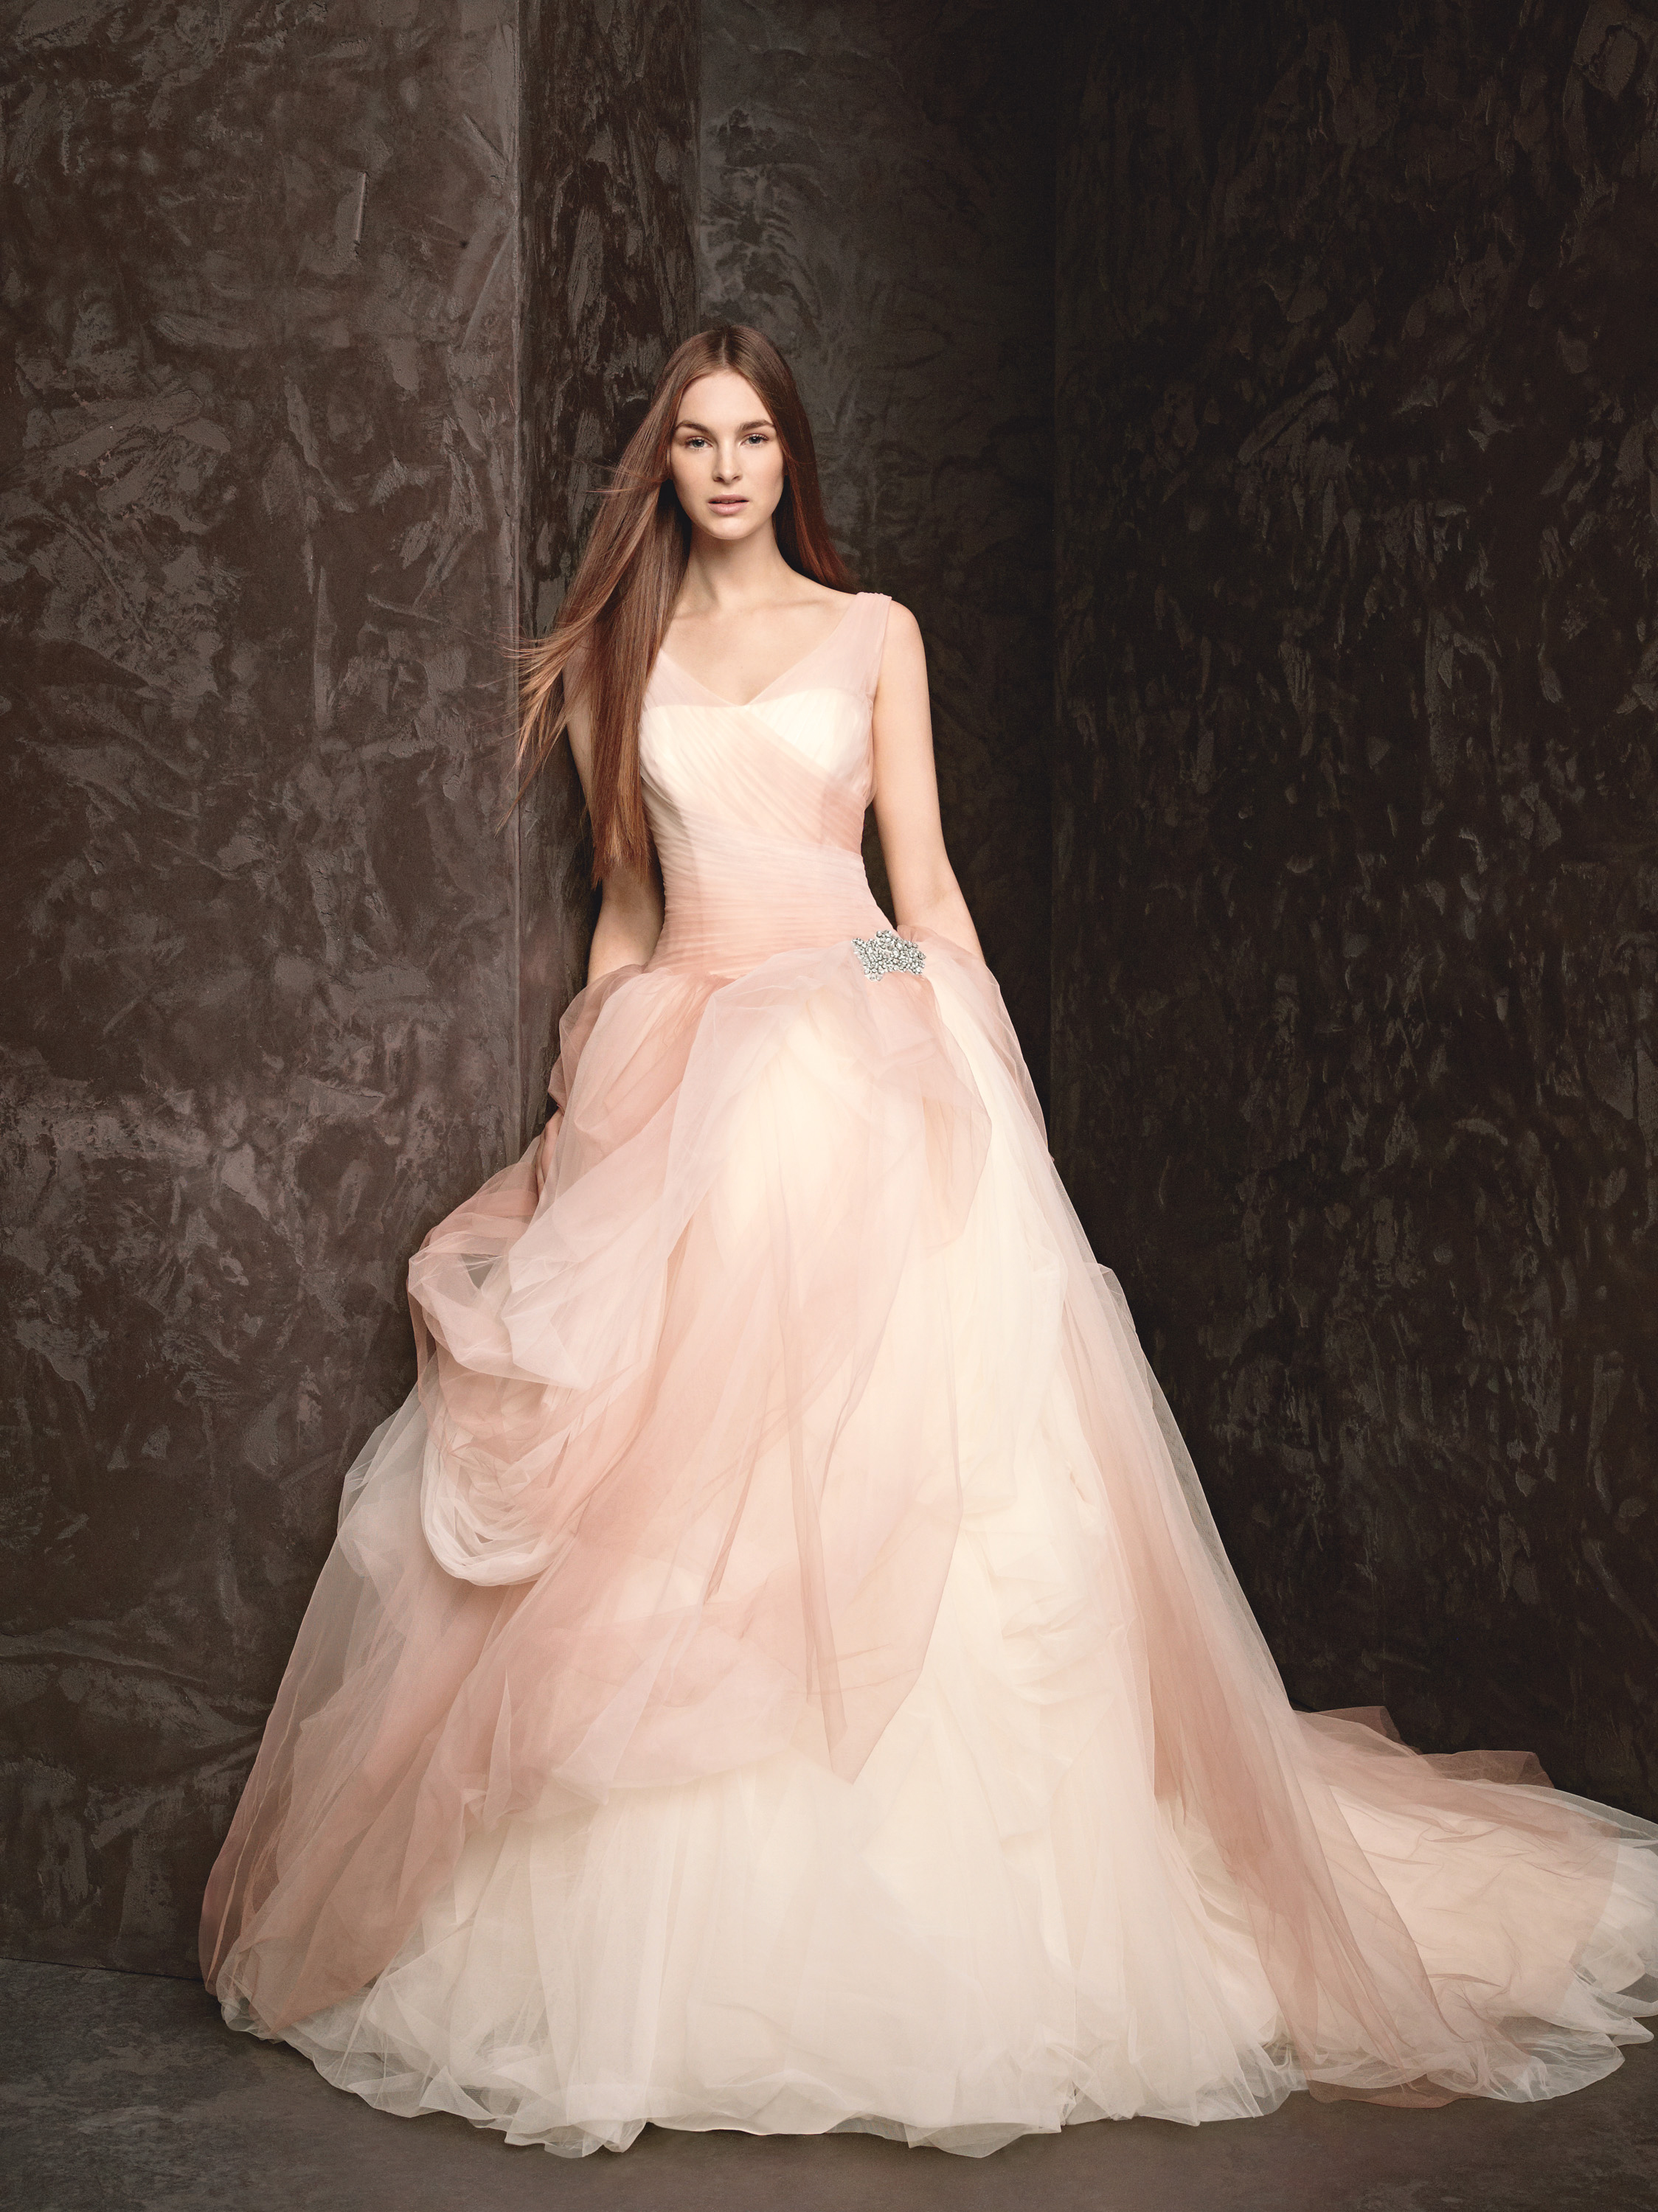 c7fbe48a6a31c Pretty in Pink- 8 Pink Wedding Dresses to Pine Over